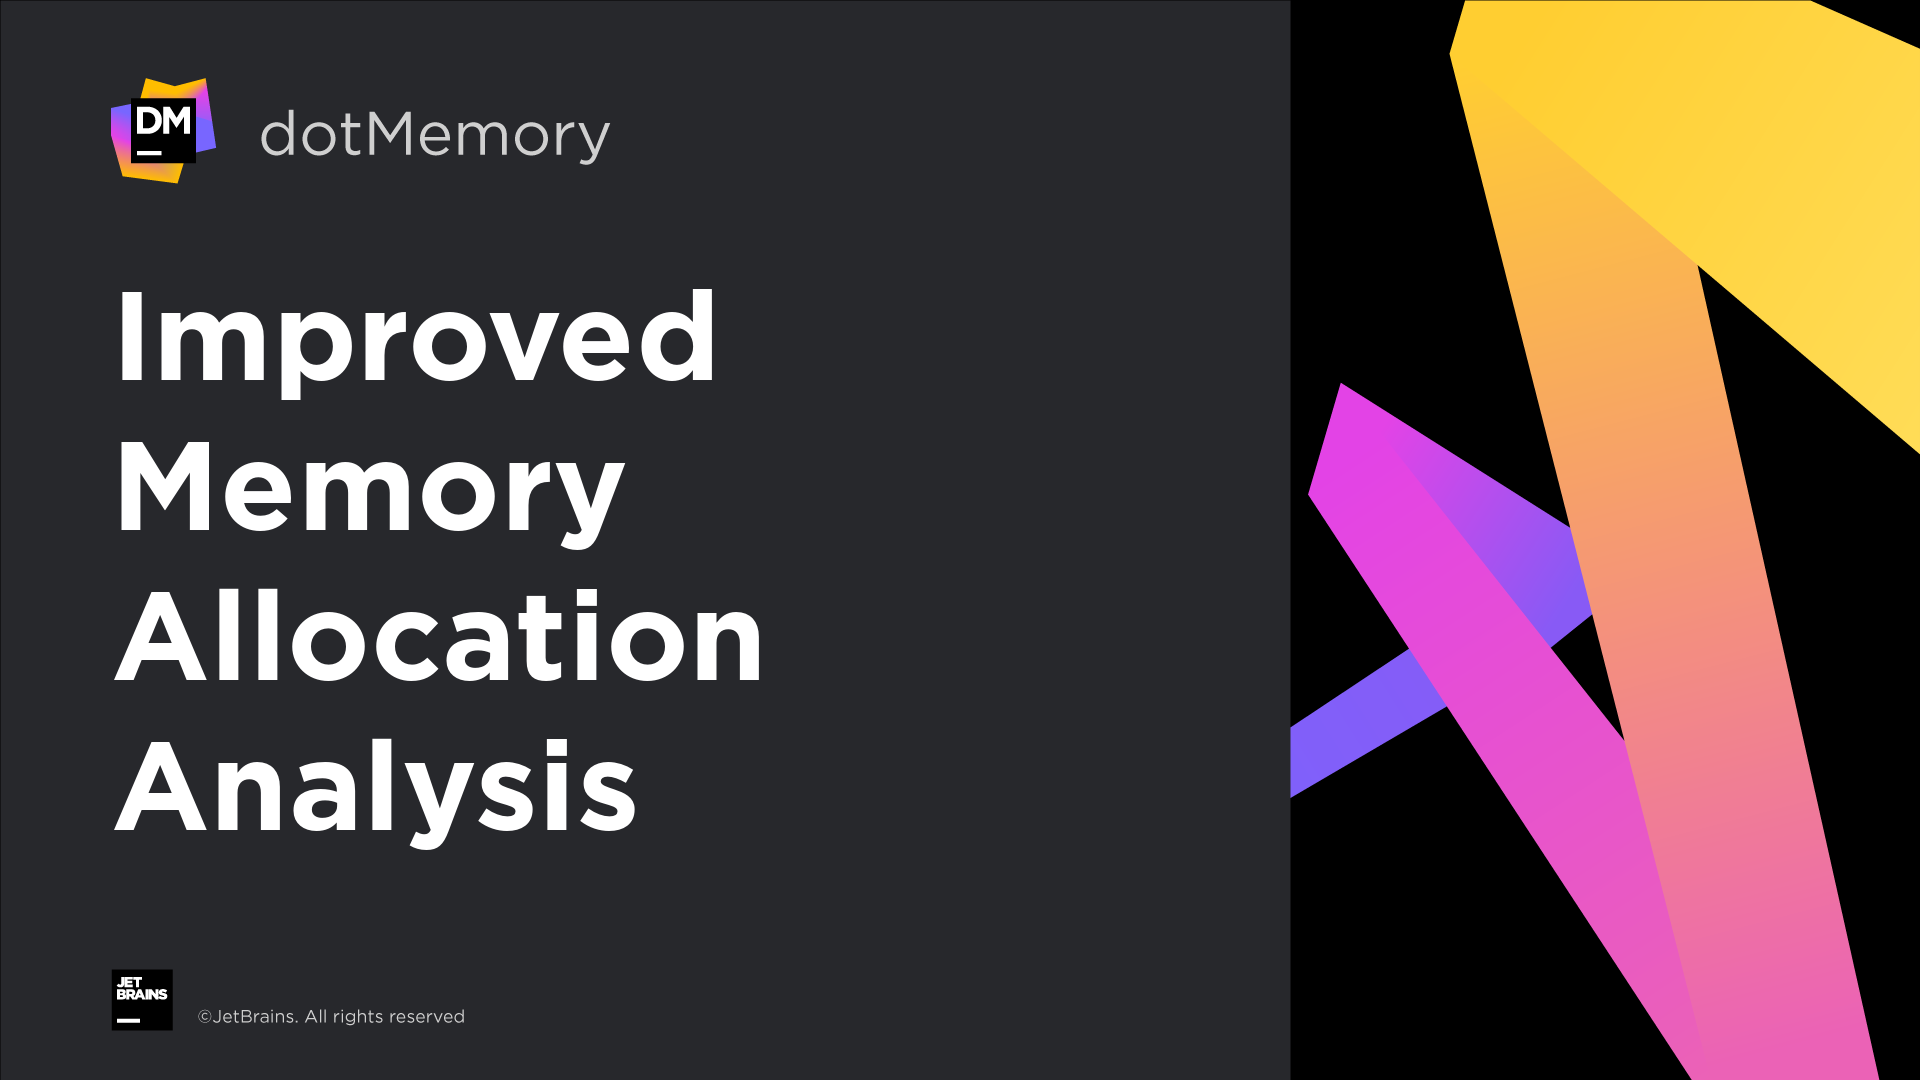 Improved memory allocation analysis